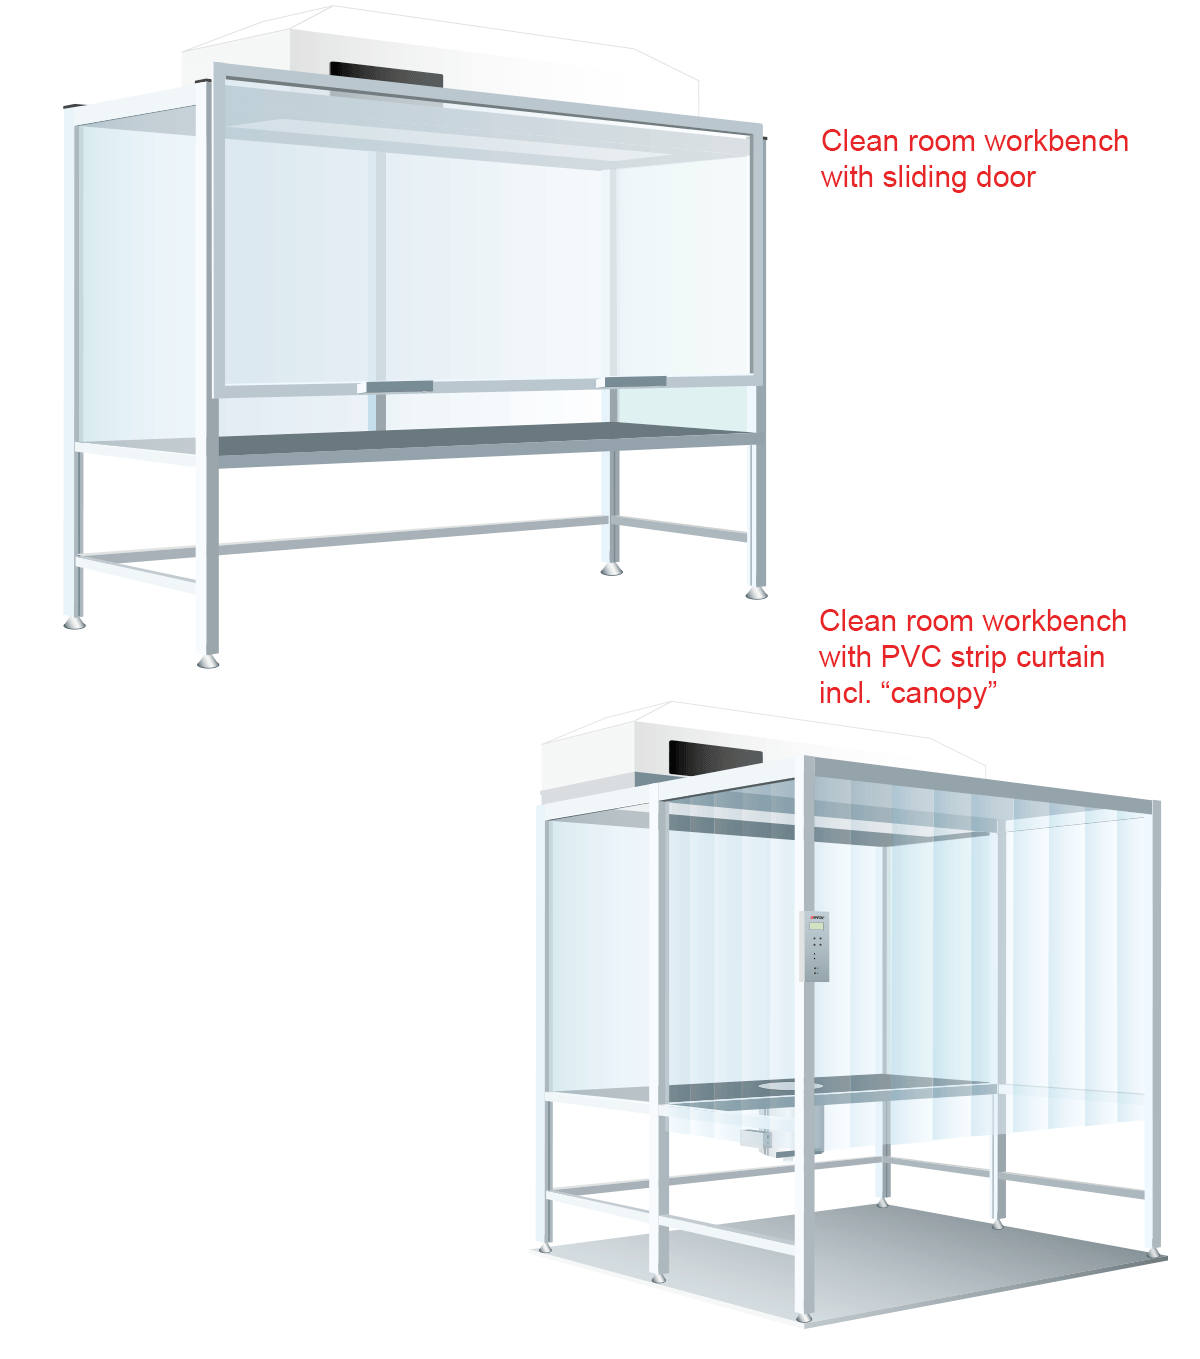 Clean room workbench with sliding door or strip curtain as canopy